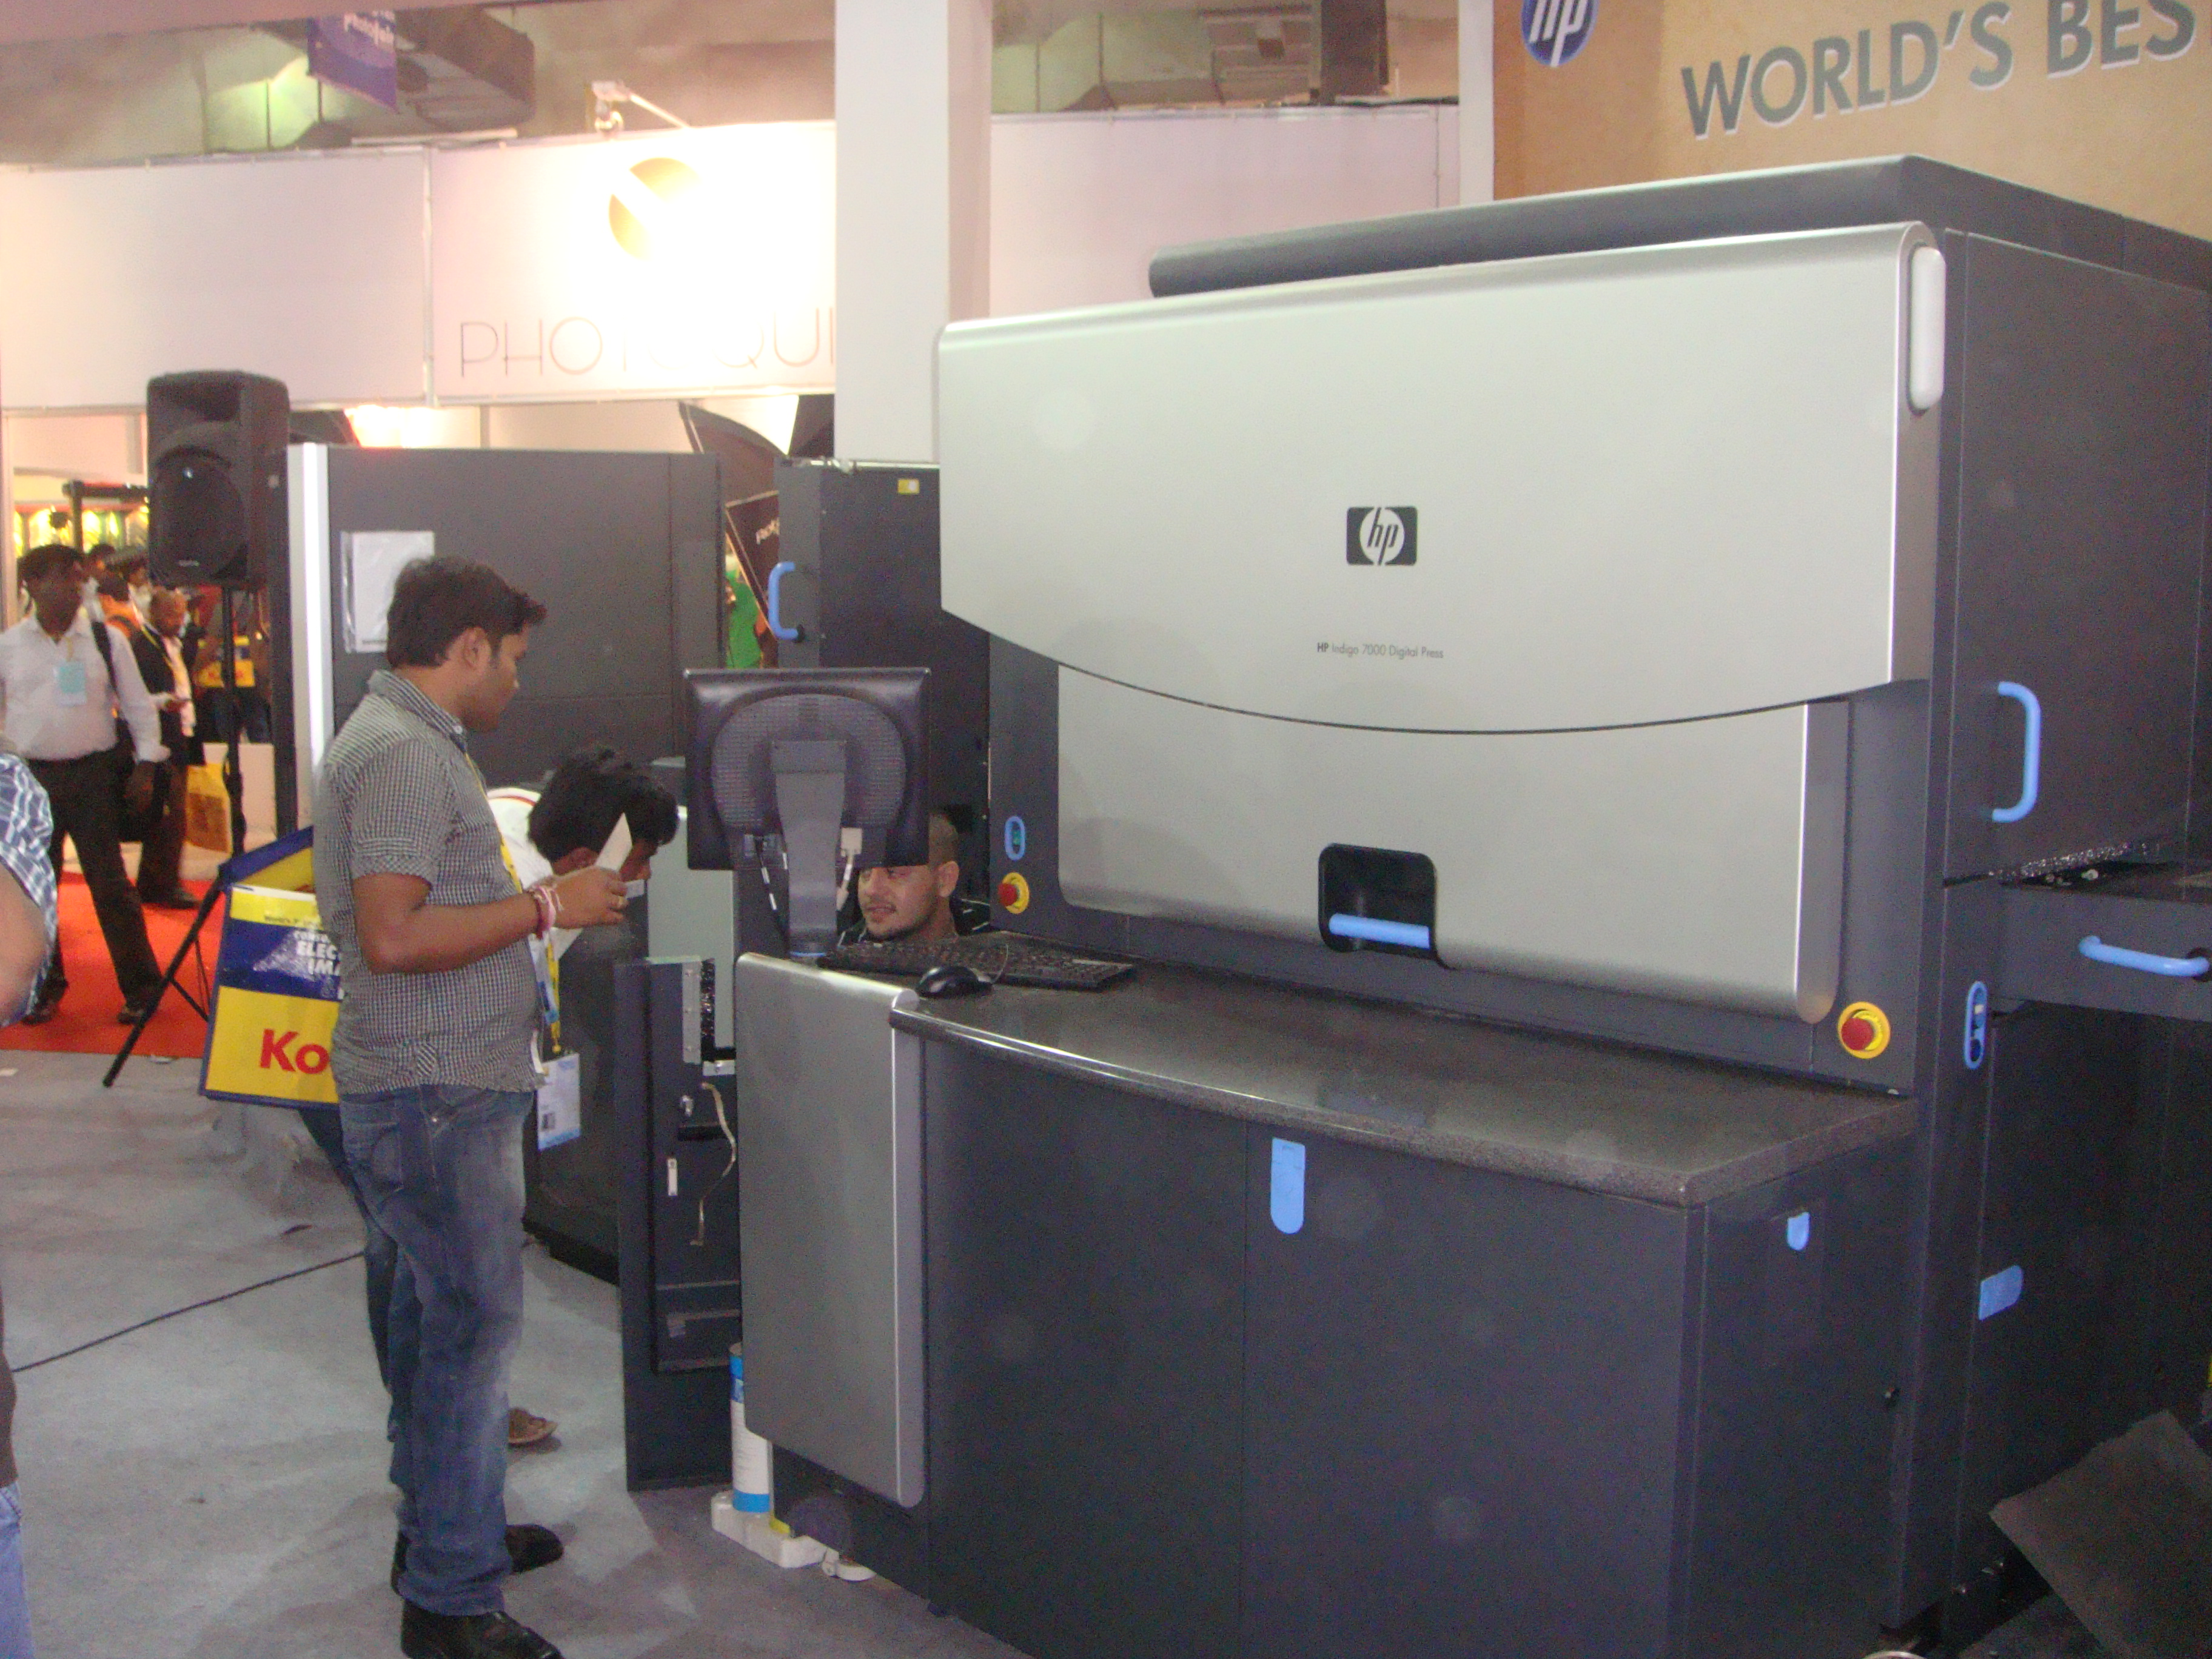 HP Indigo 7000 on display at the recent Photofair 2012